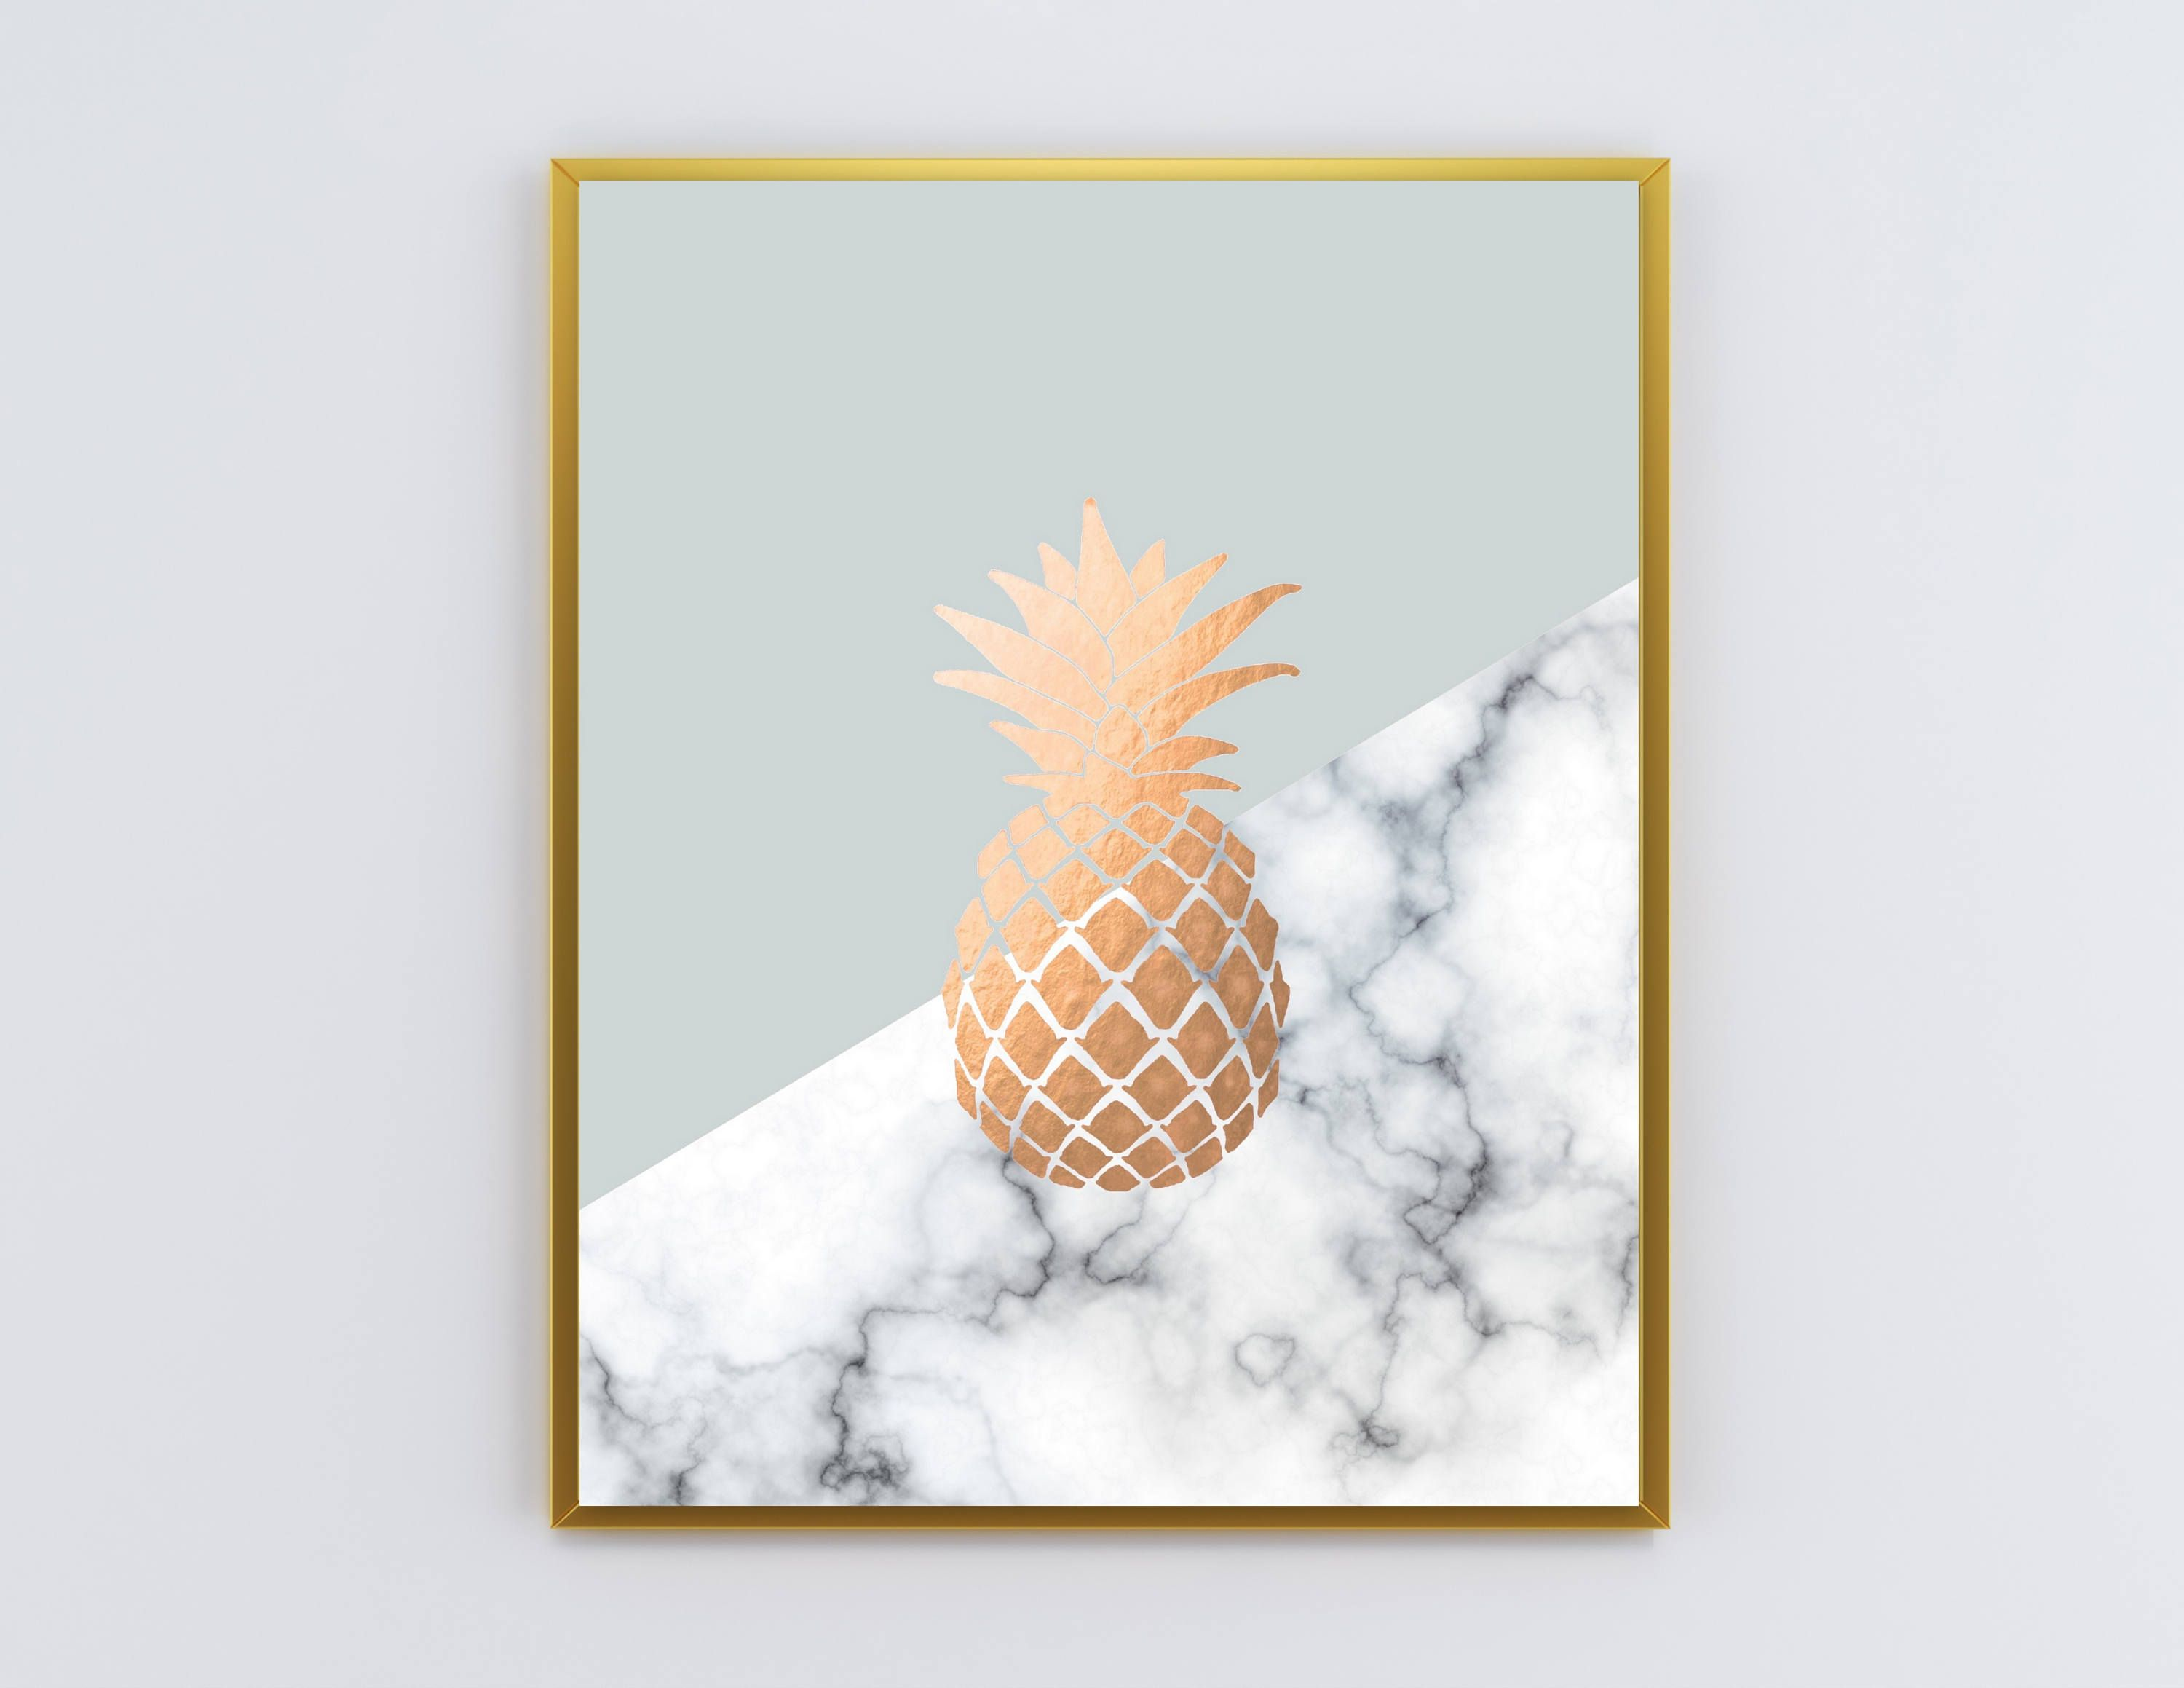 Marble Pineapple Wallpapers On Wallpaperdog